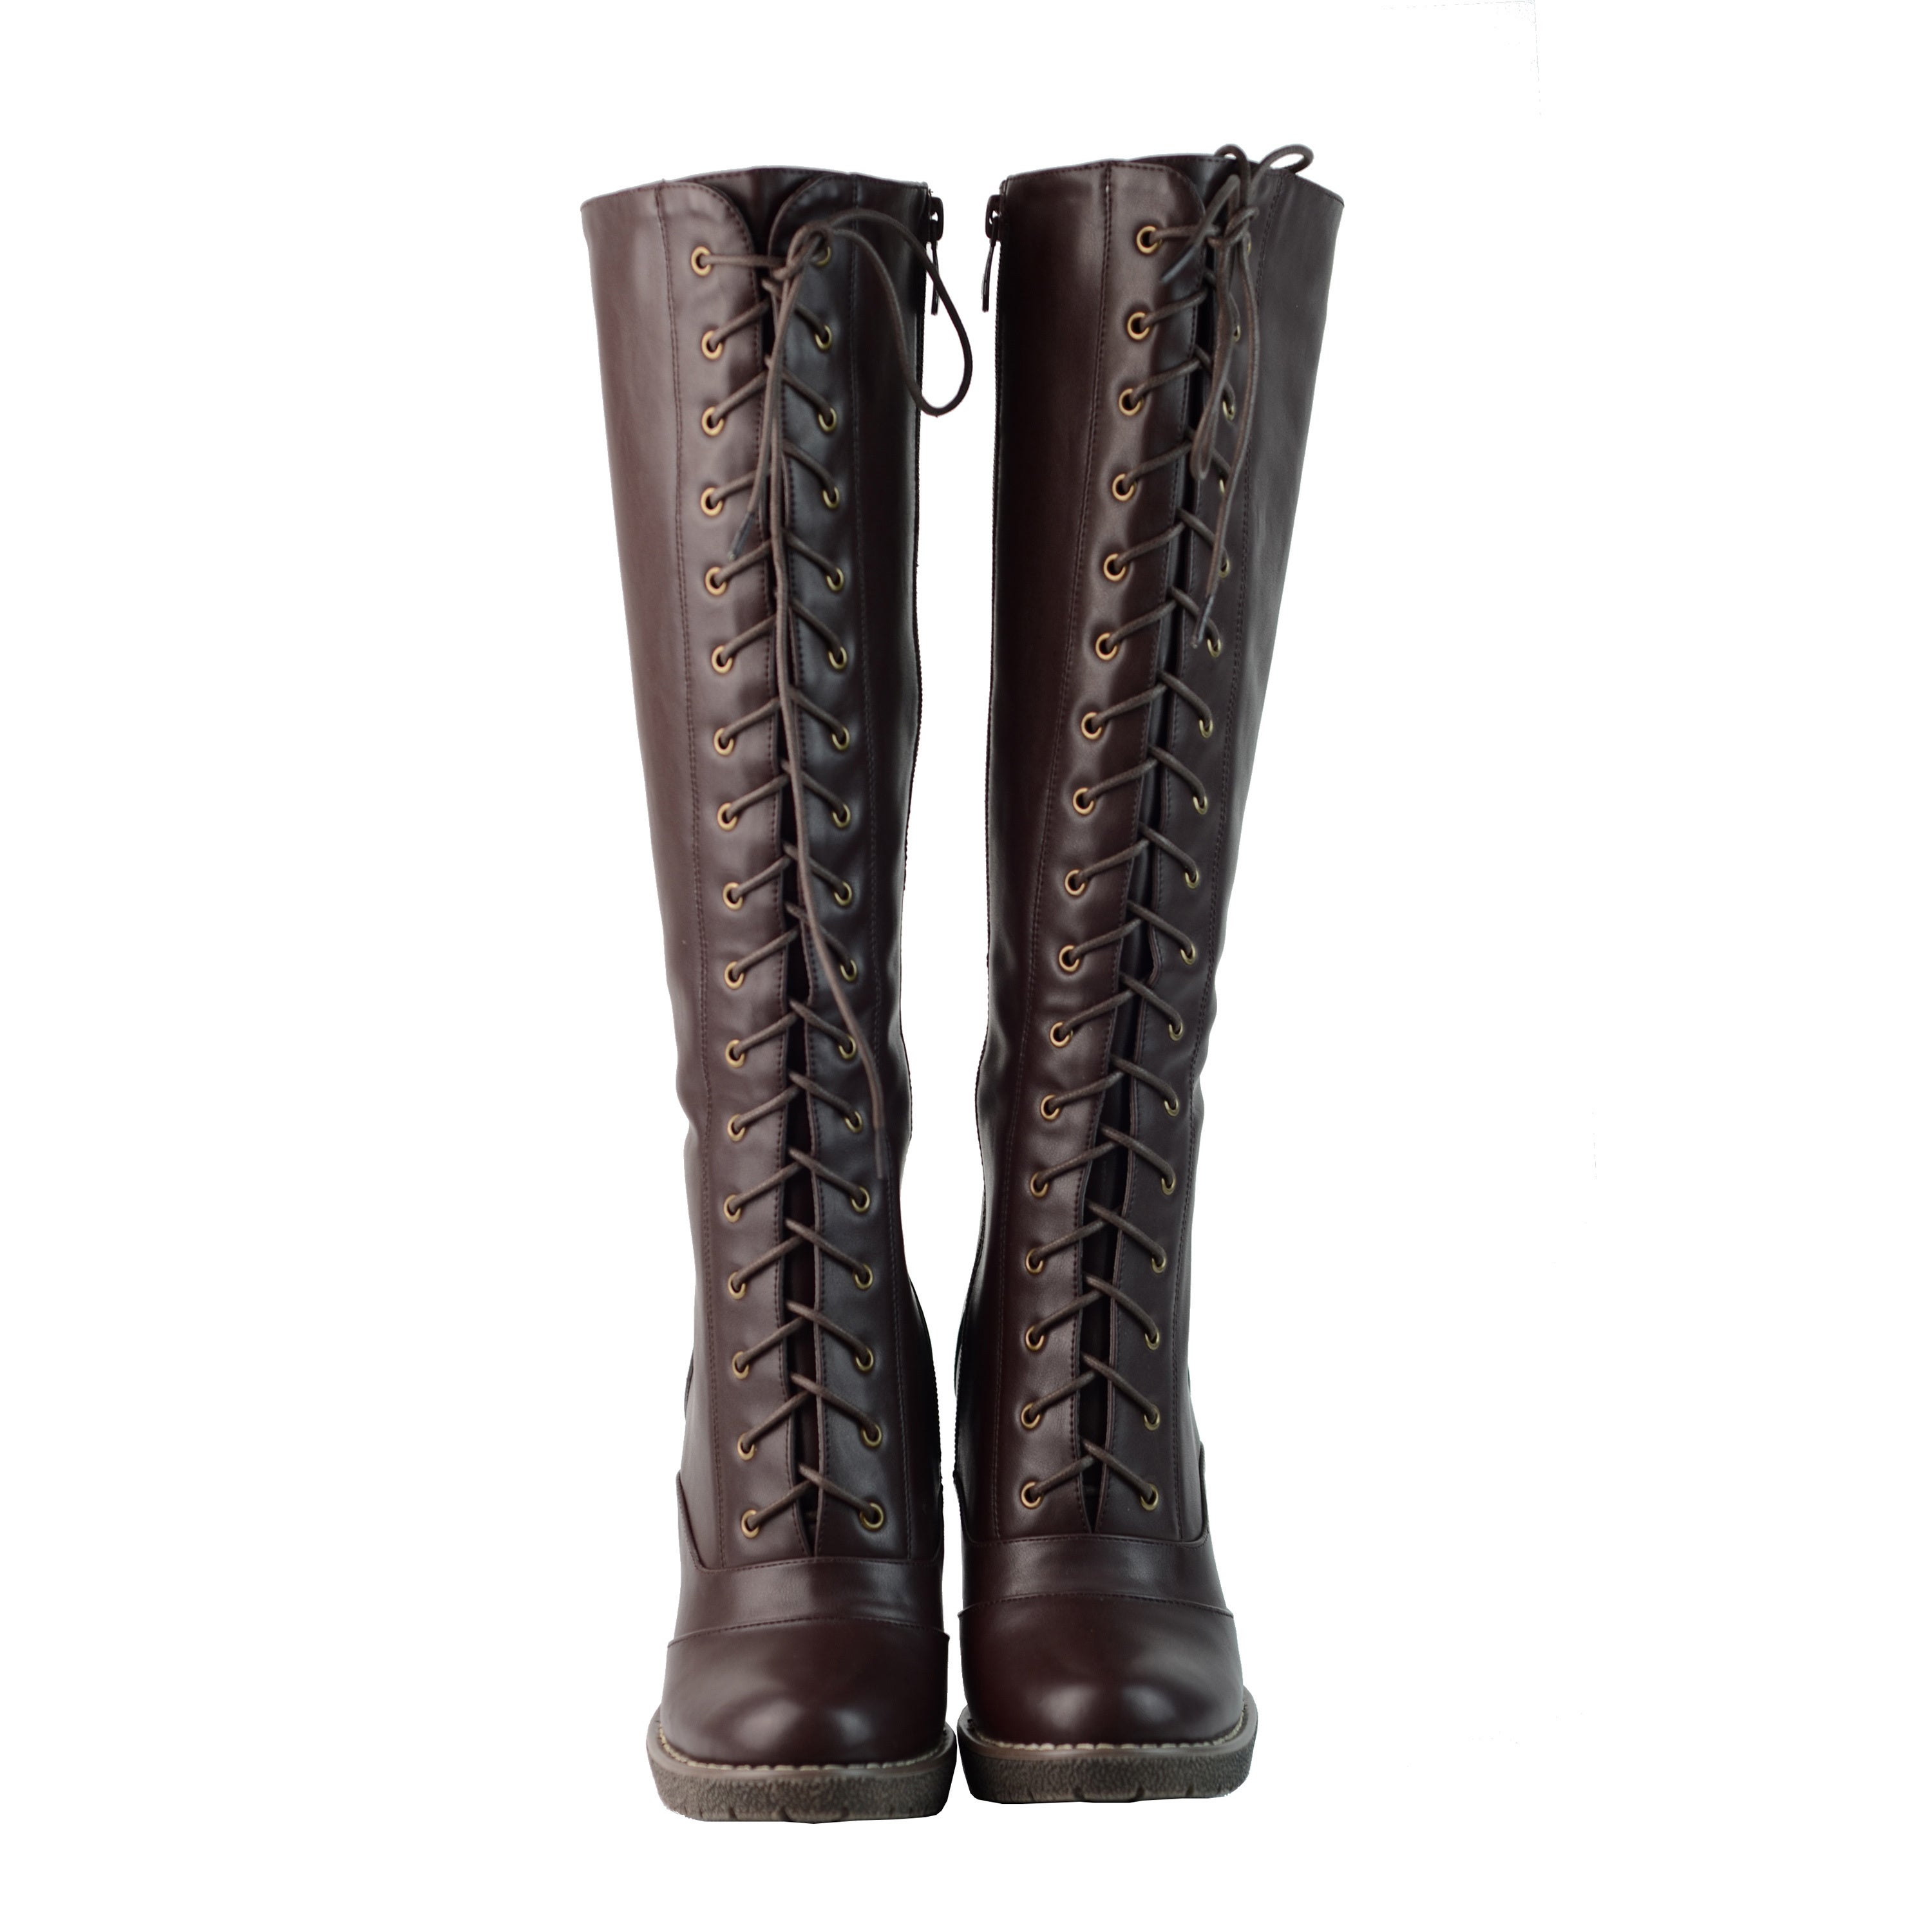 Darla' Lace-up Riding Boots - Overstock